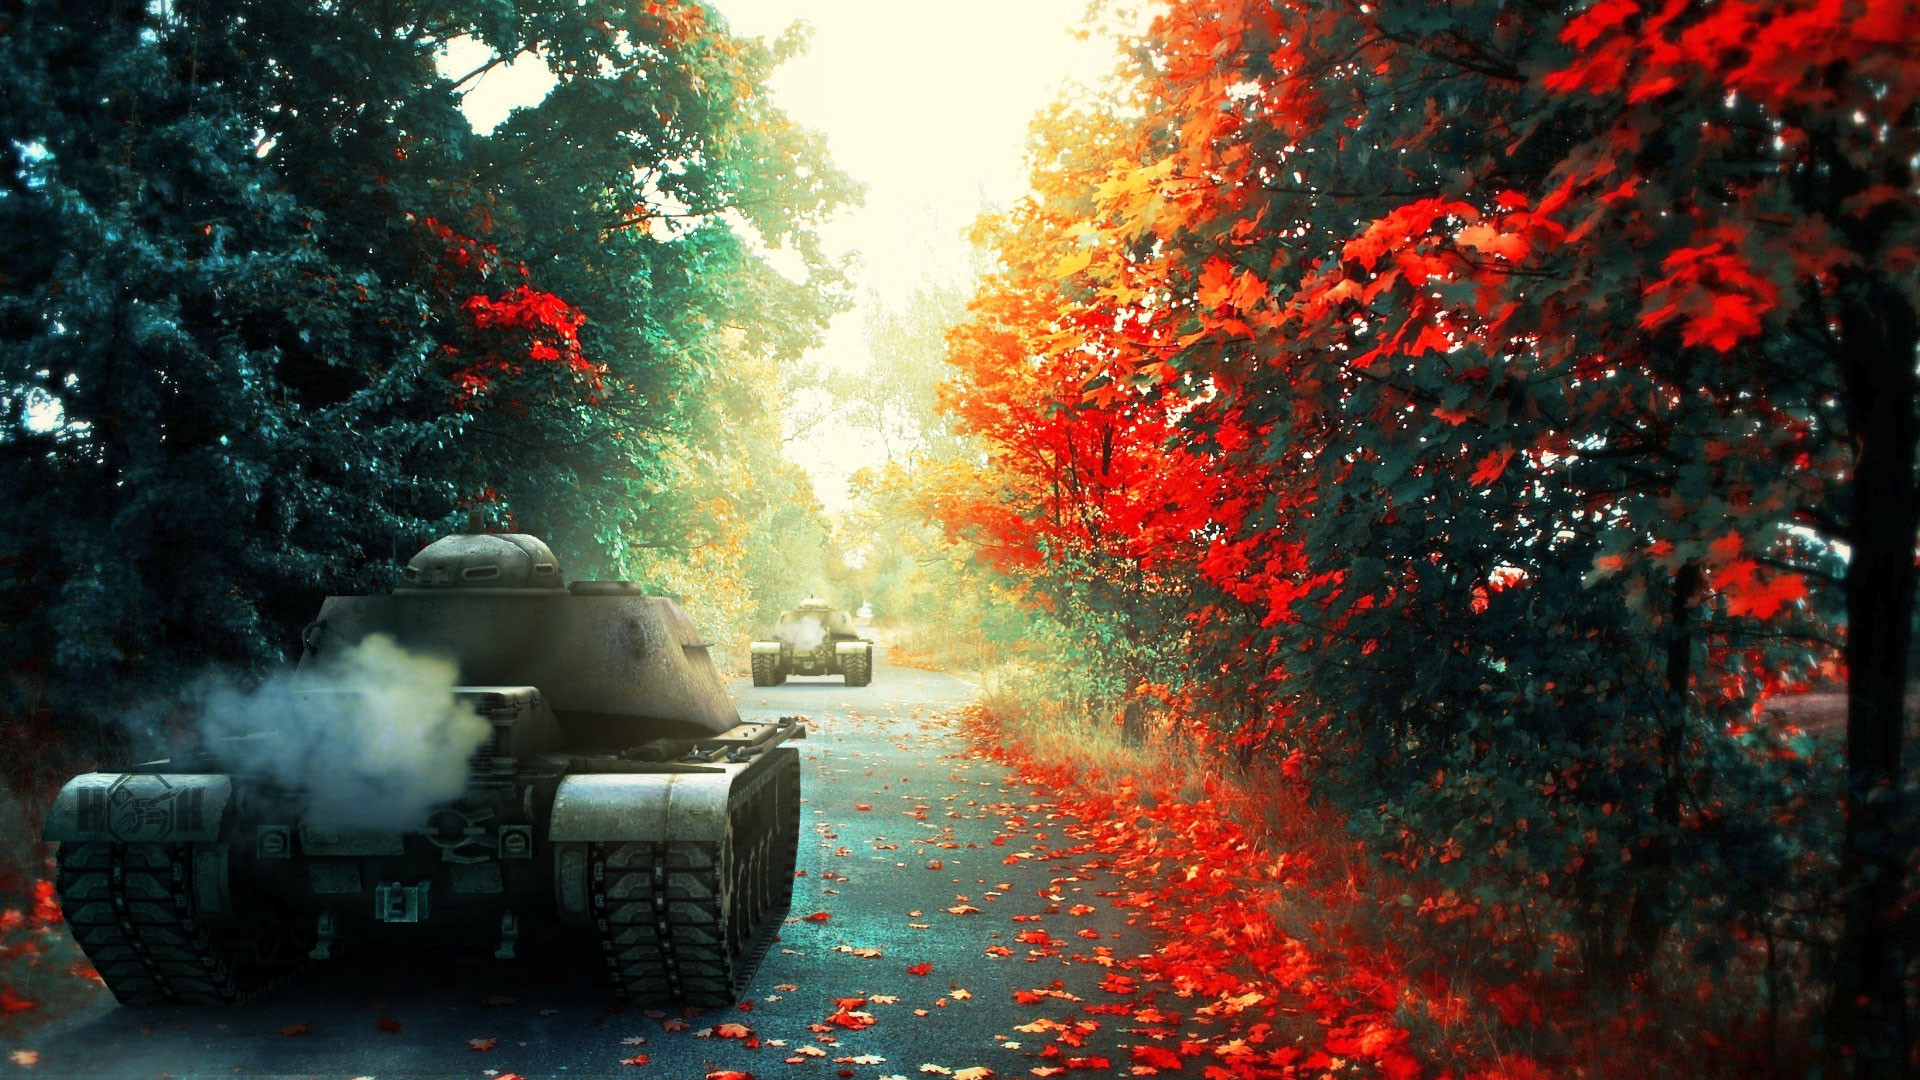 1920x1080 hd pics photos best war vehicles tanks road nature autumn leaves hd quality desktop  background wallpaper